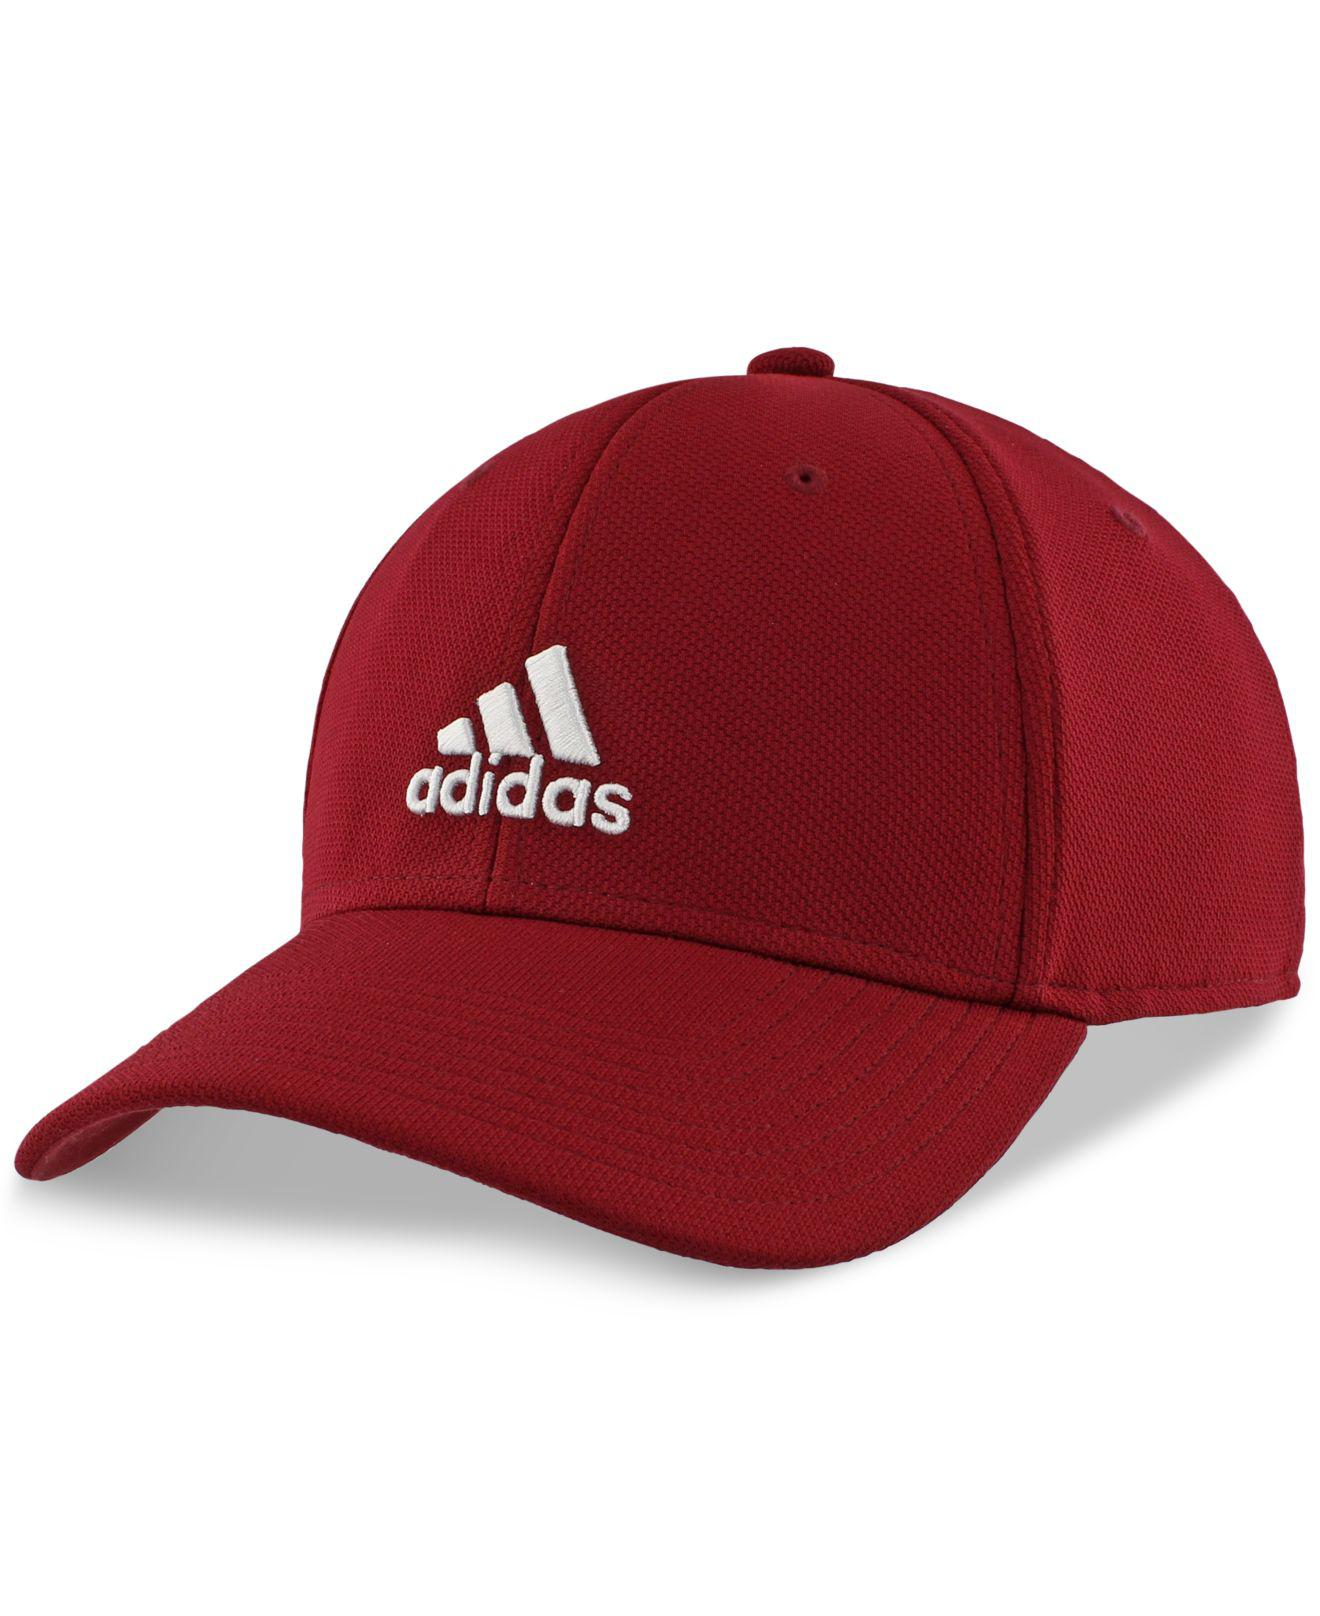 Lyst - adidas Rucker Climalite® Stretch Cap in Red for Men e4bedbabe04